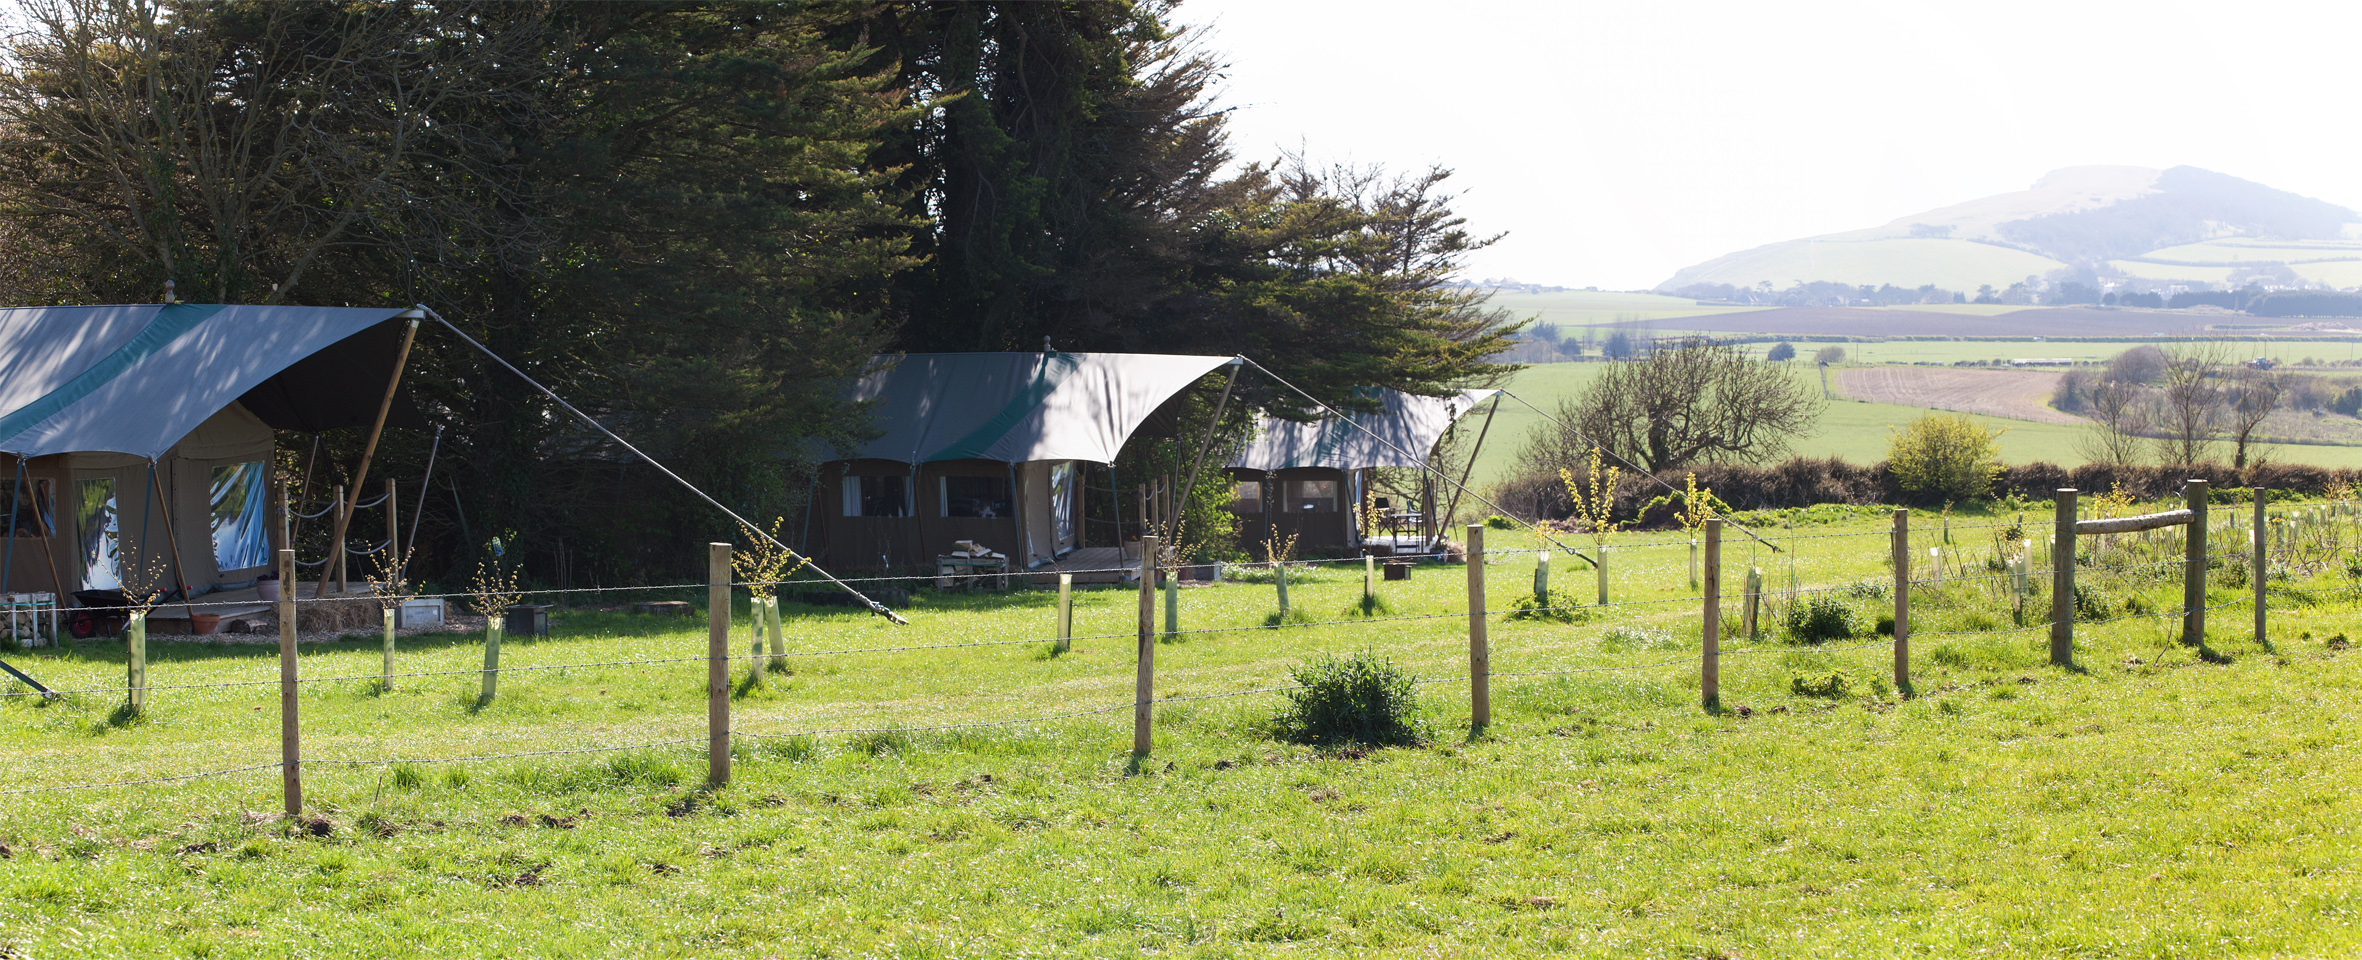 Nestled away on Tapnell Farm our 5 Eco Lodges share beautiful views of Tennyson Downs and The Solent with our cows!